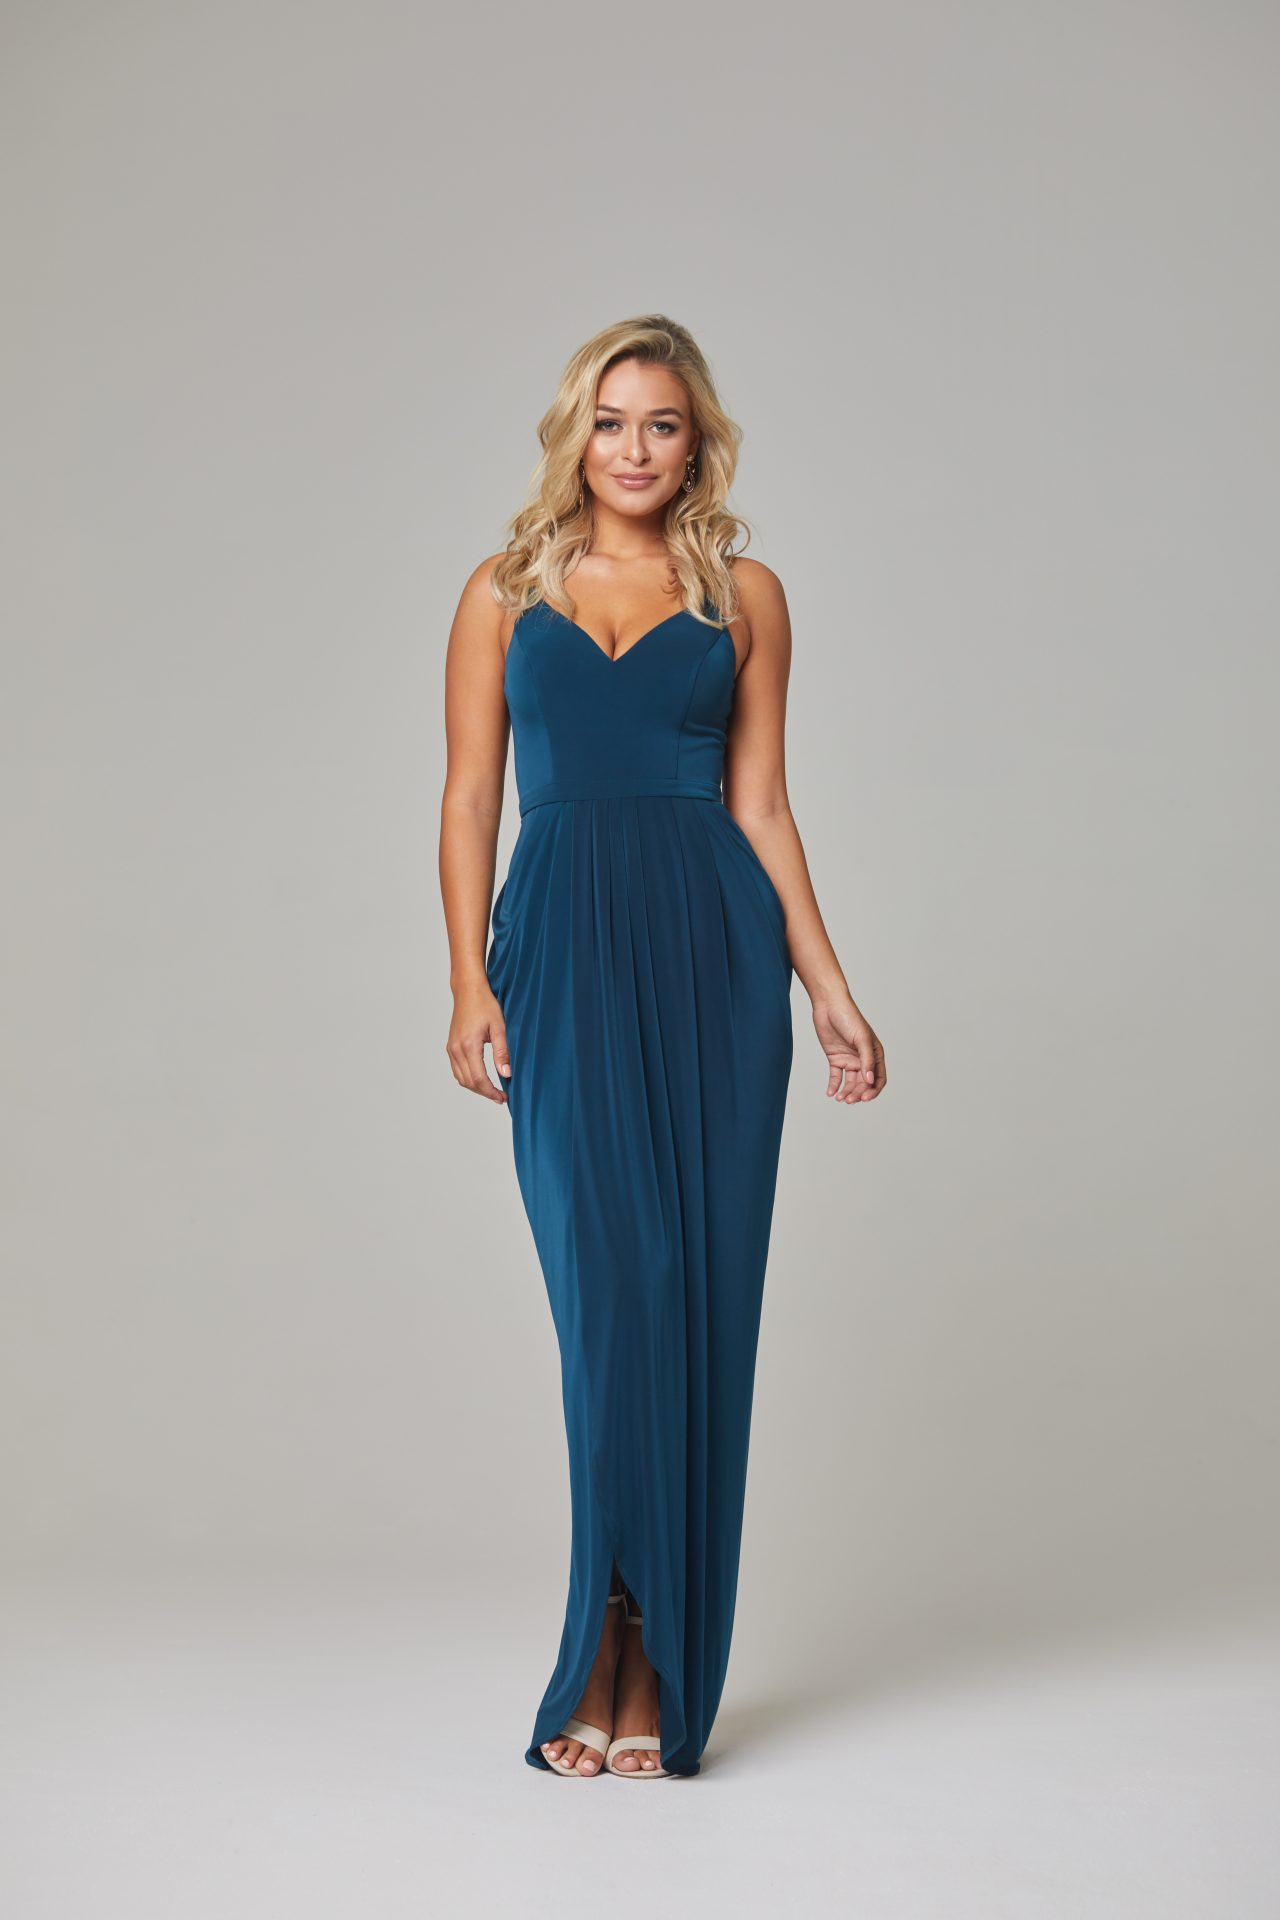 Claire - soft jersey knit - 2019 Bridesmaid Collection - Tania Olsen ... 34749493a